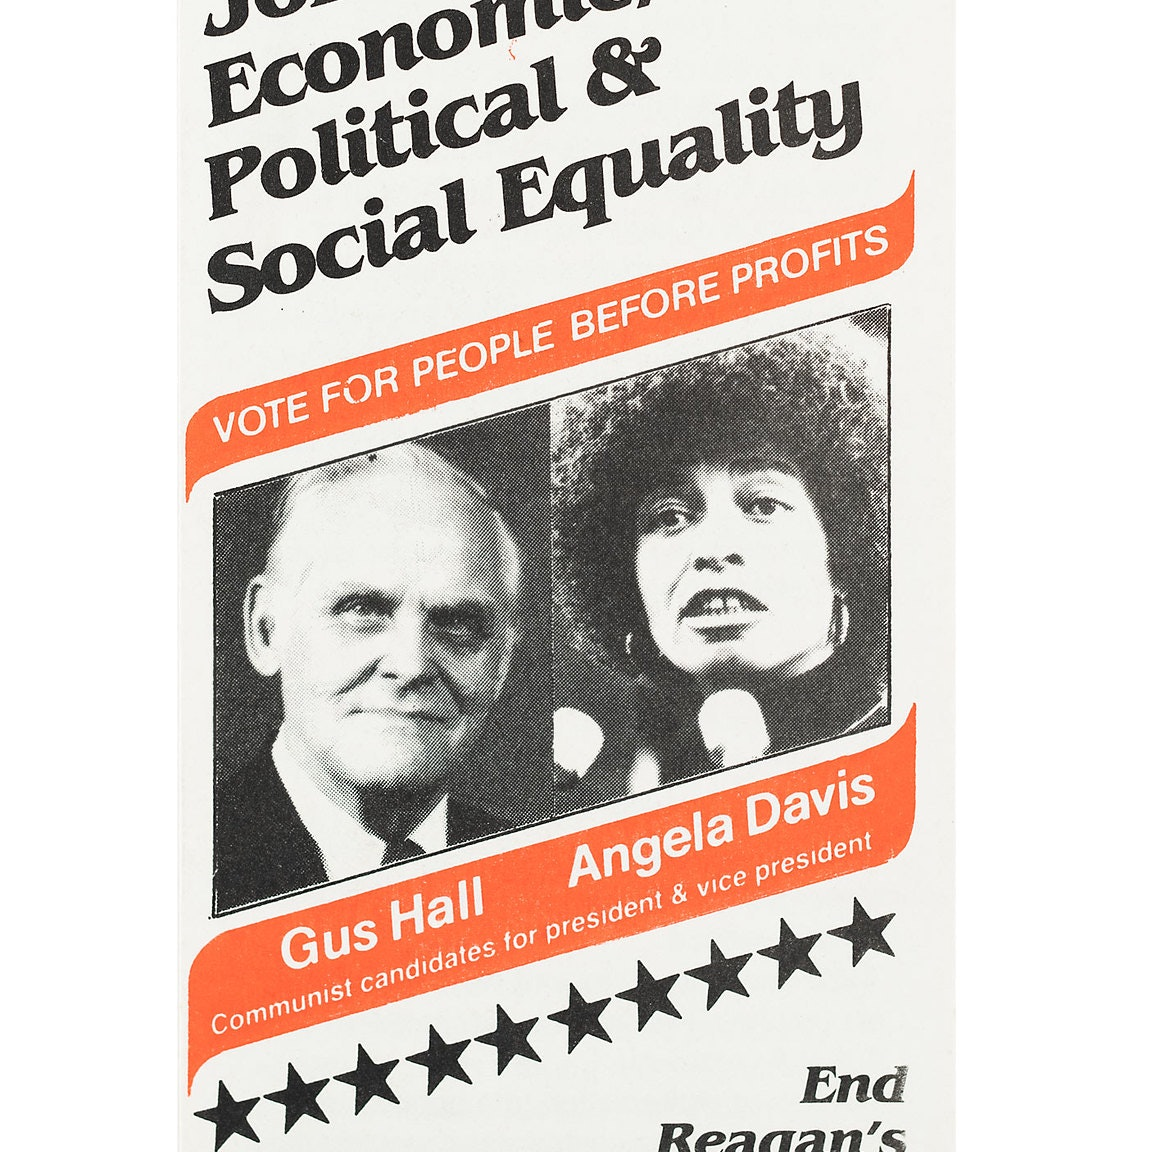 Headshots of Gus Hall and Angela Davis on pamphlet design. With banners in orange throughout.